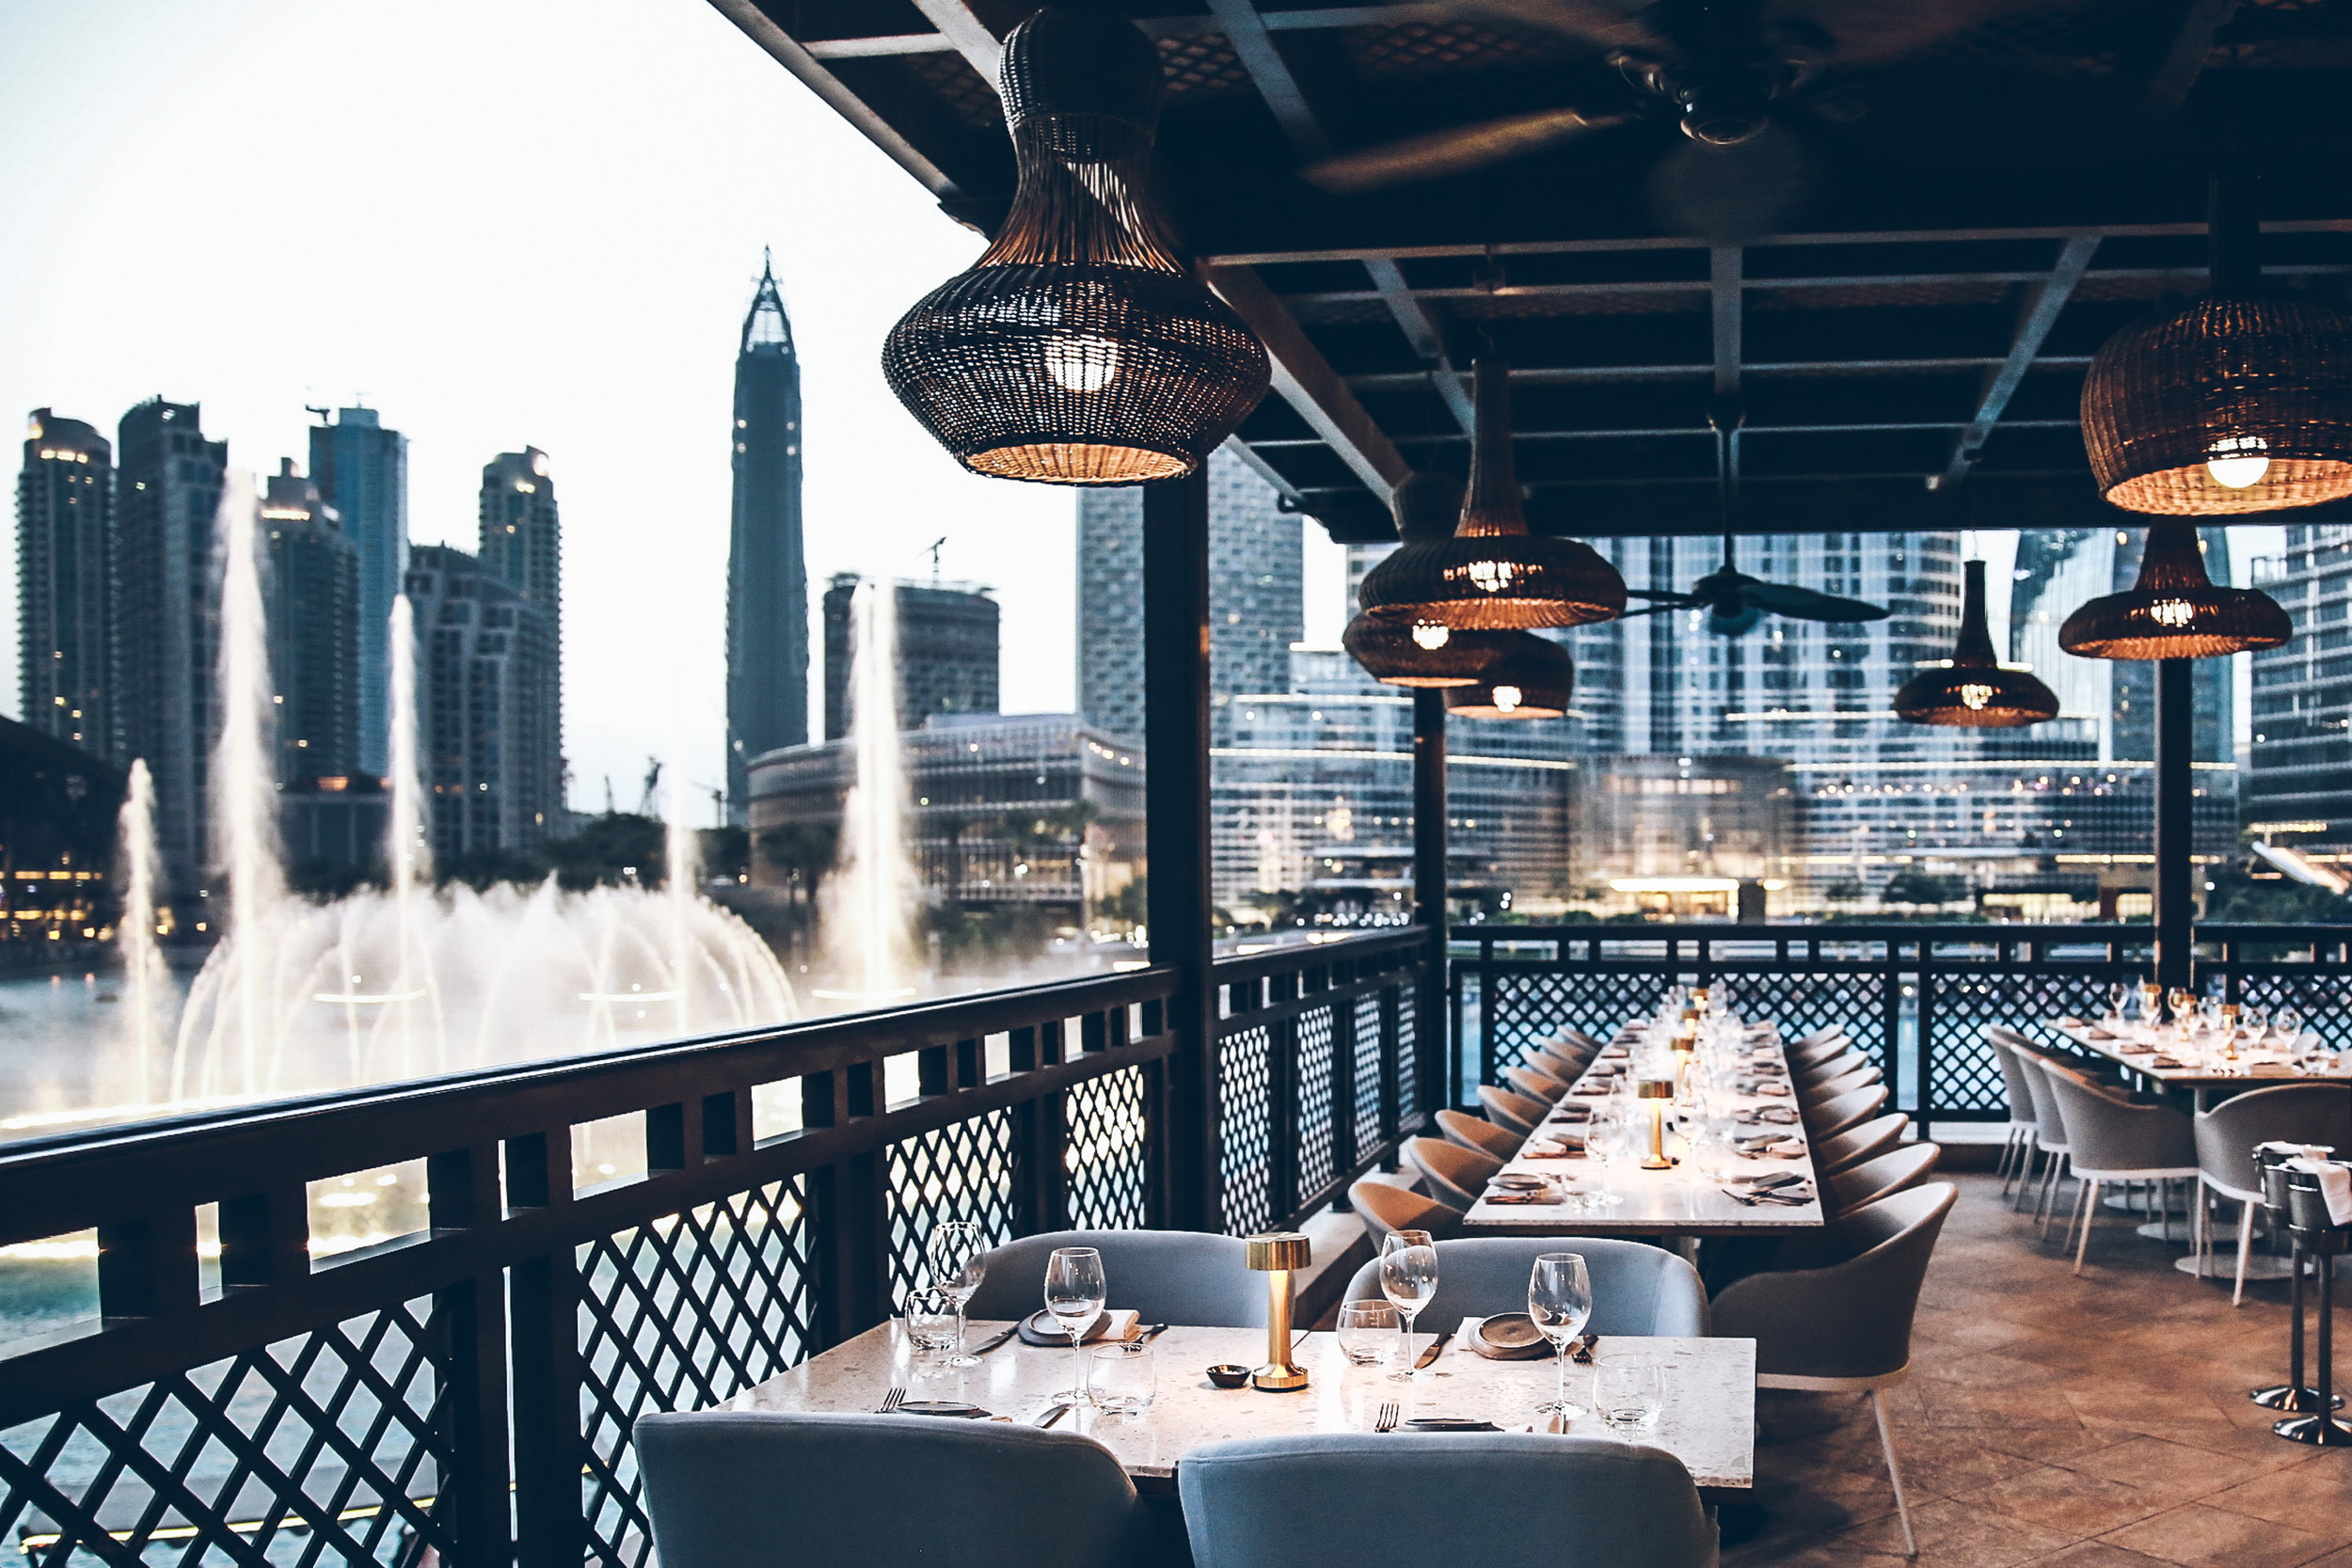 july, 2017  Details by Schiavello   ''Timeless yet contemporary, The Atlantic Dubai's interiors enhance and compliment the ocean to plate experience in its new location abroad.''    https://www.schiavello.com/details-archive/